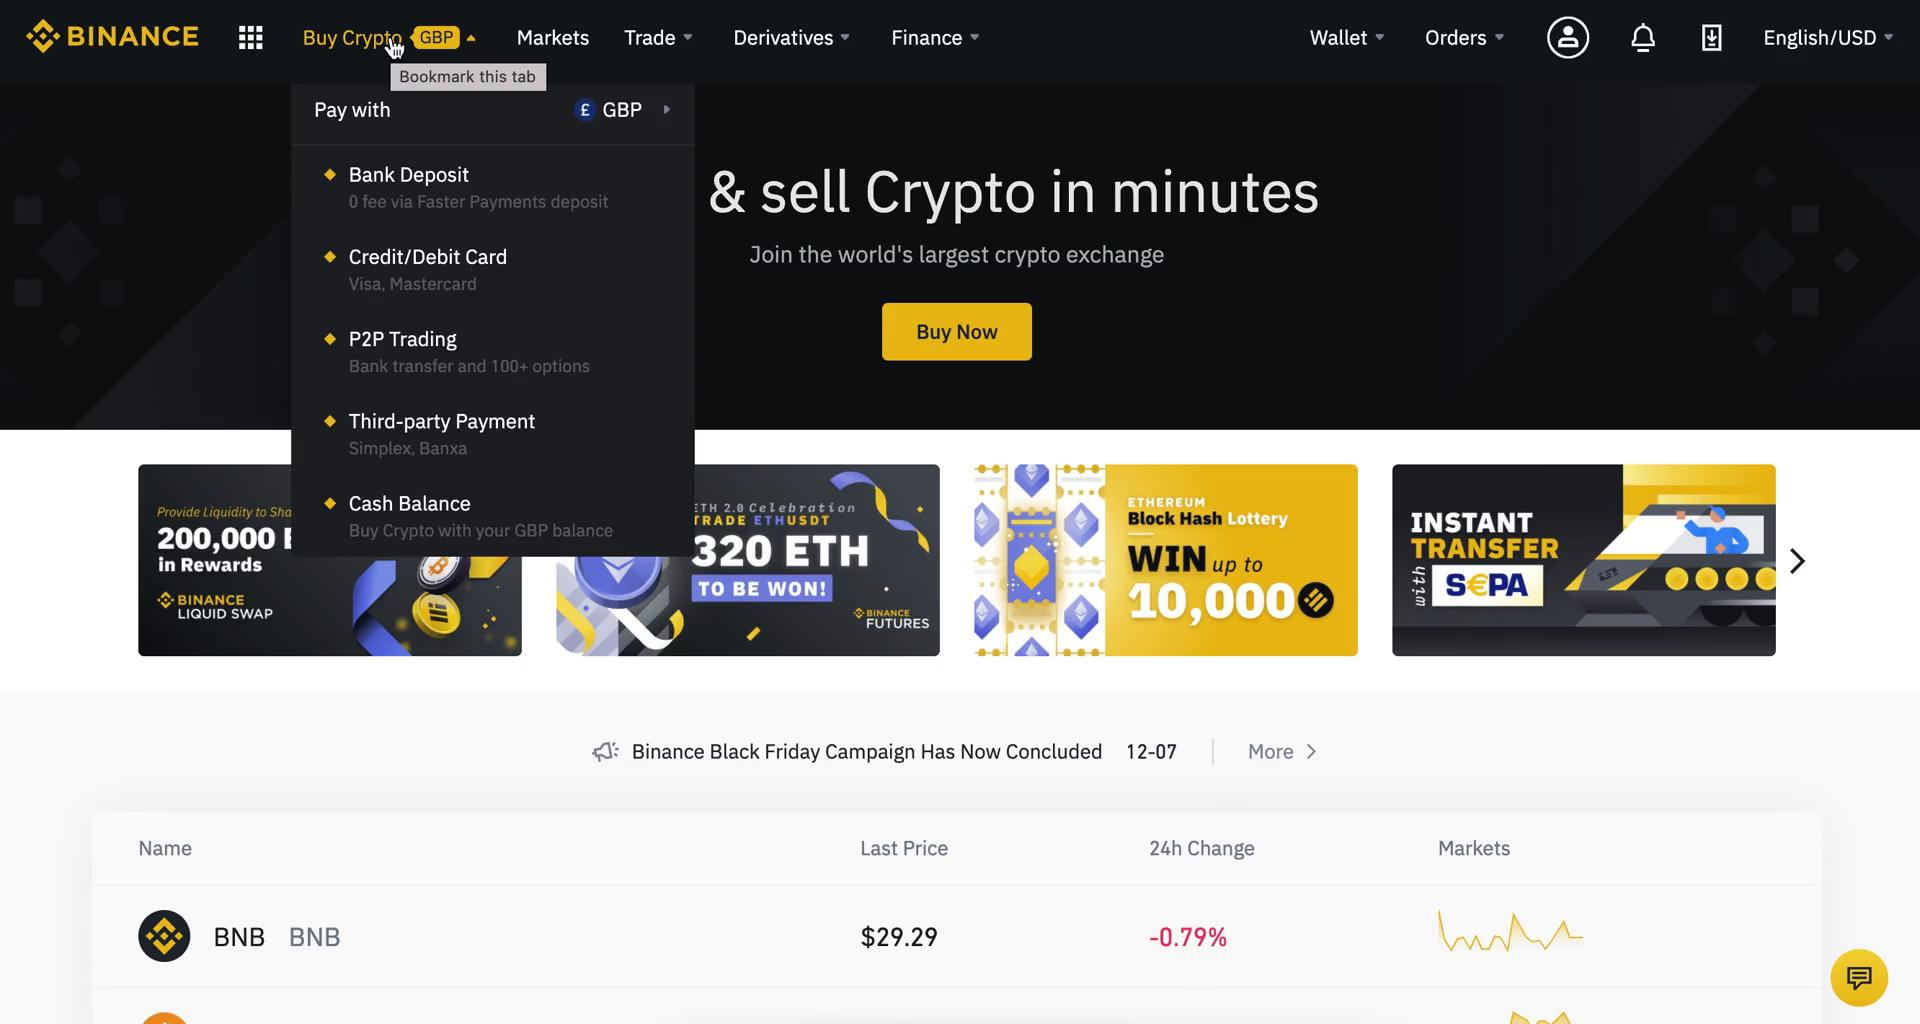 Buying crypto currency on Binance video screenshot